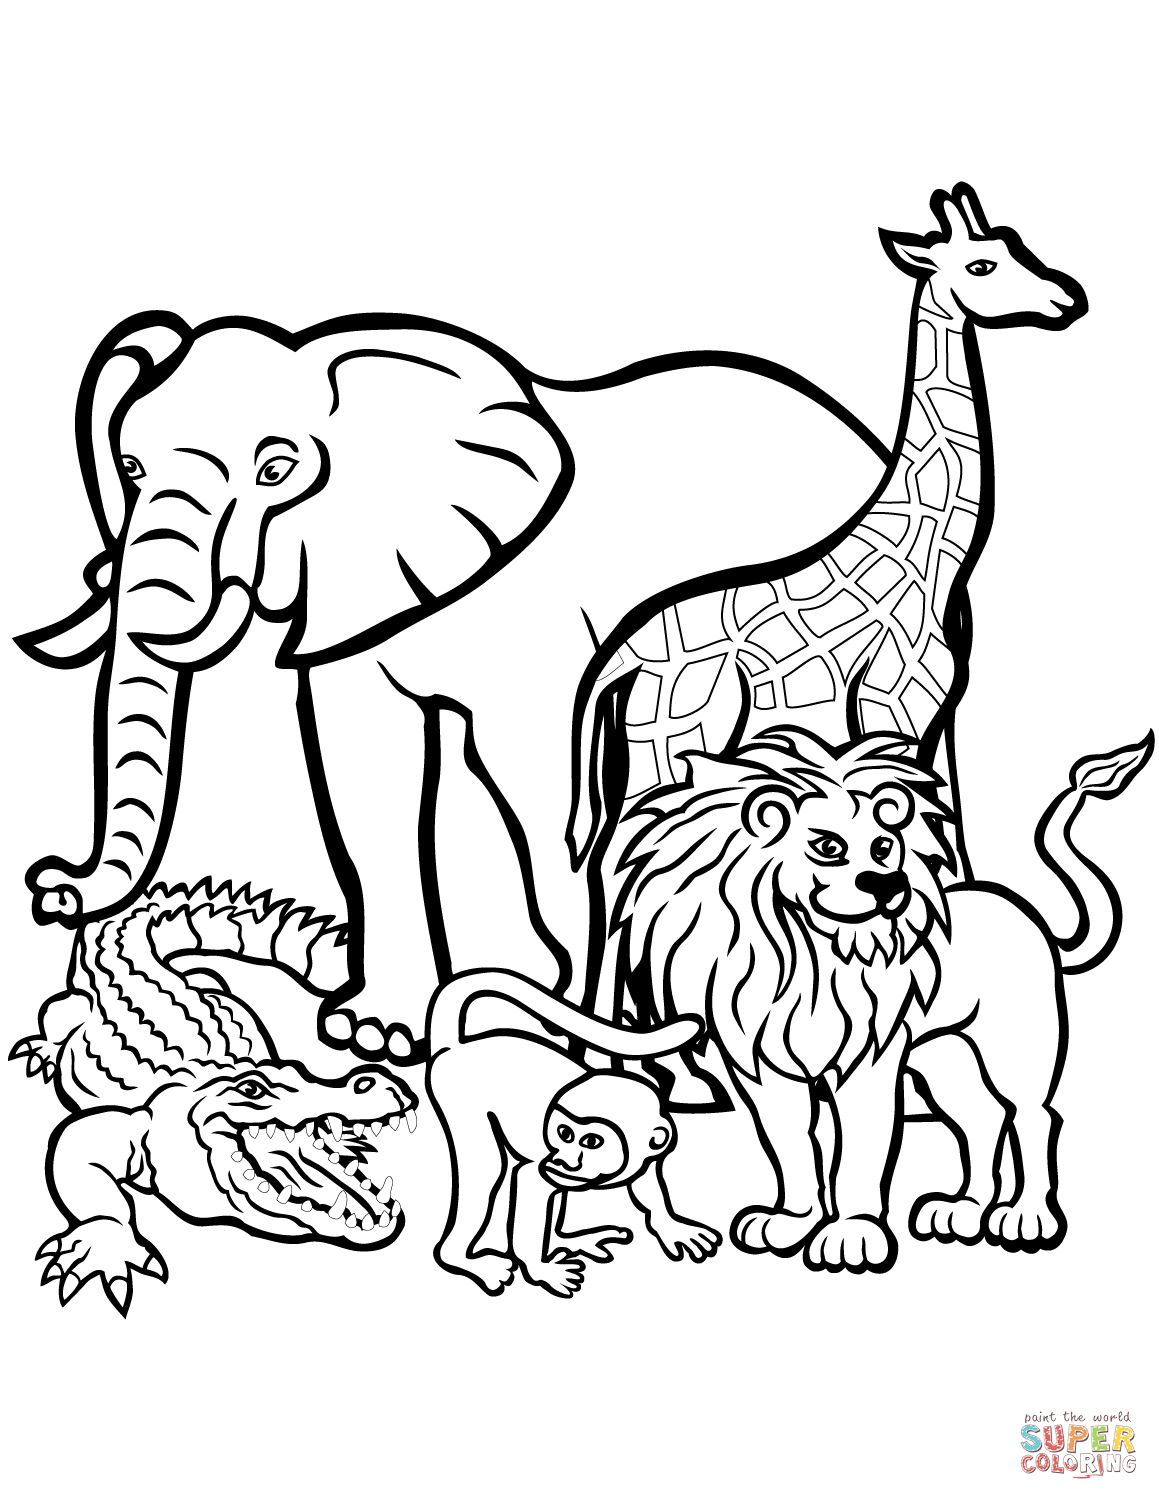 zoo animal coloring pages to print cute zoo animal coloring pages coloring home to coloring zoo pages print animal